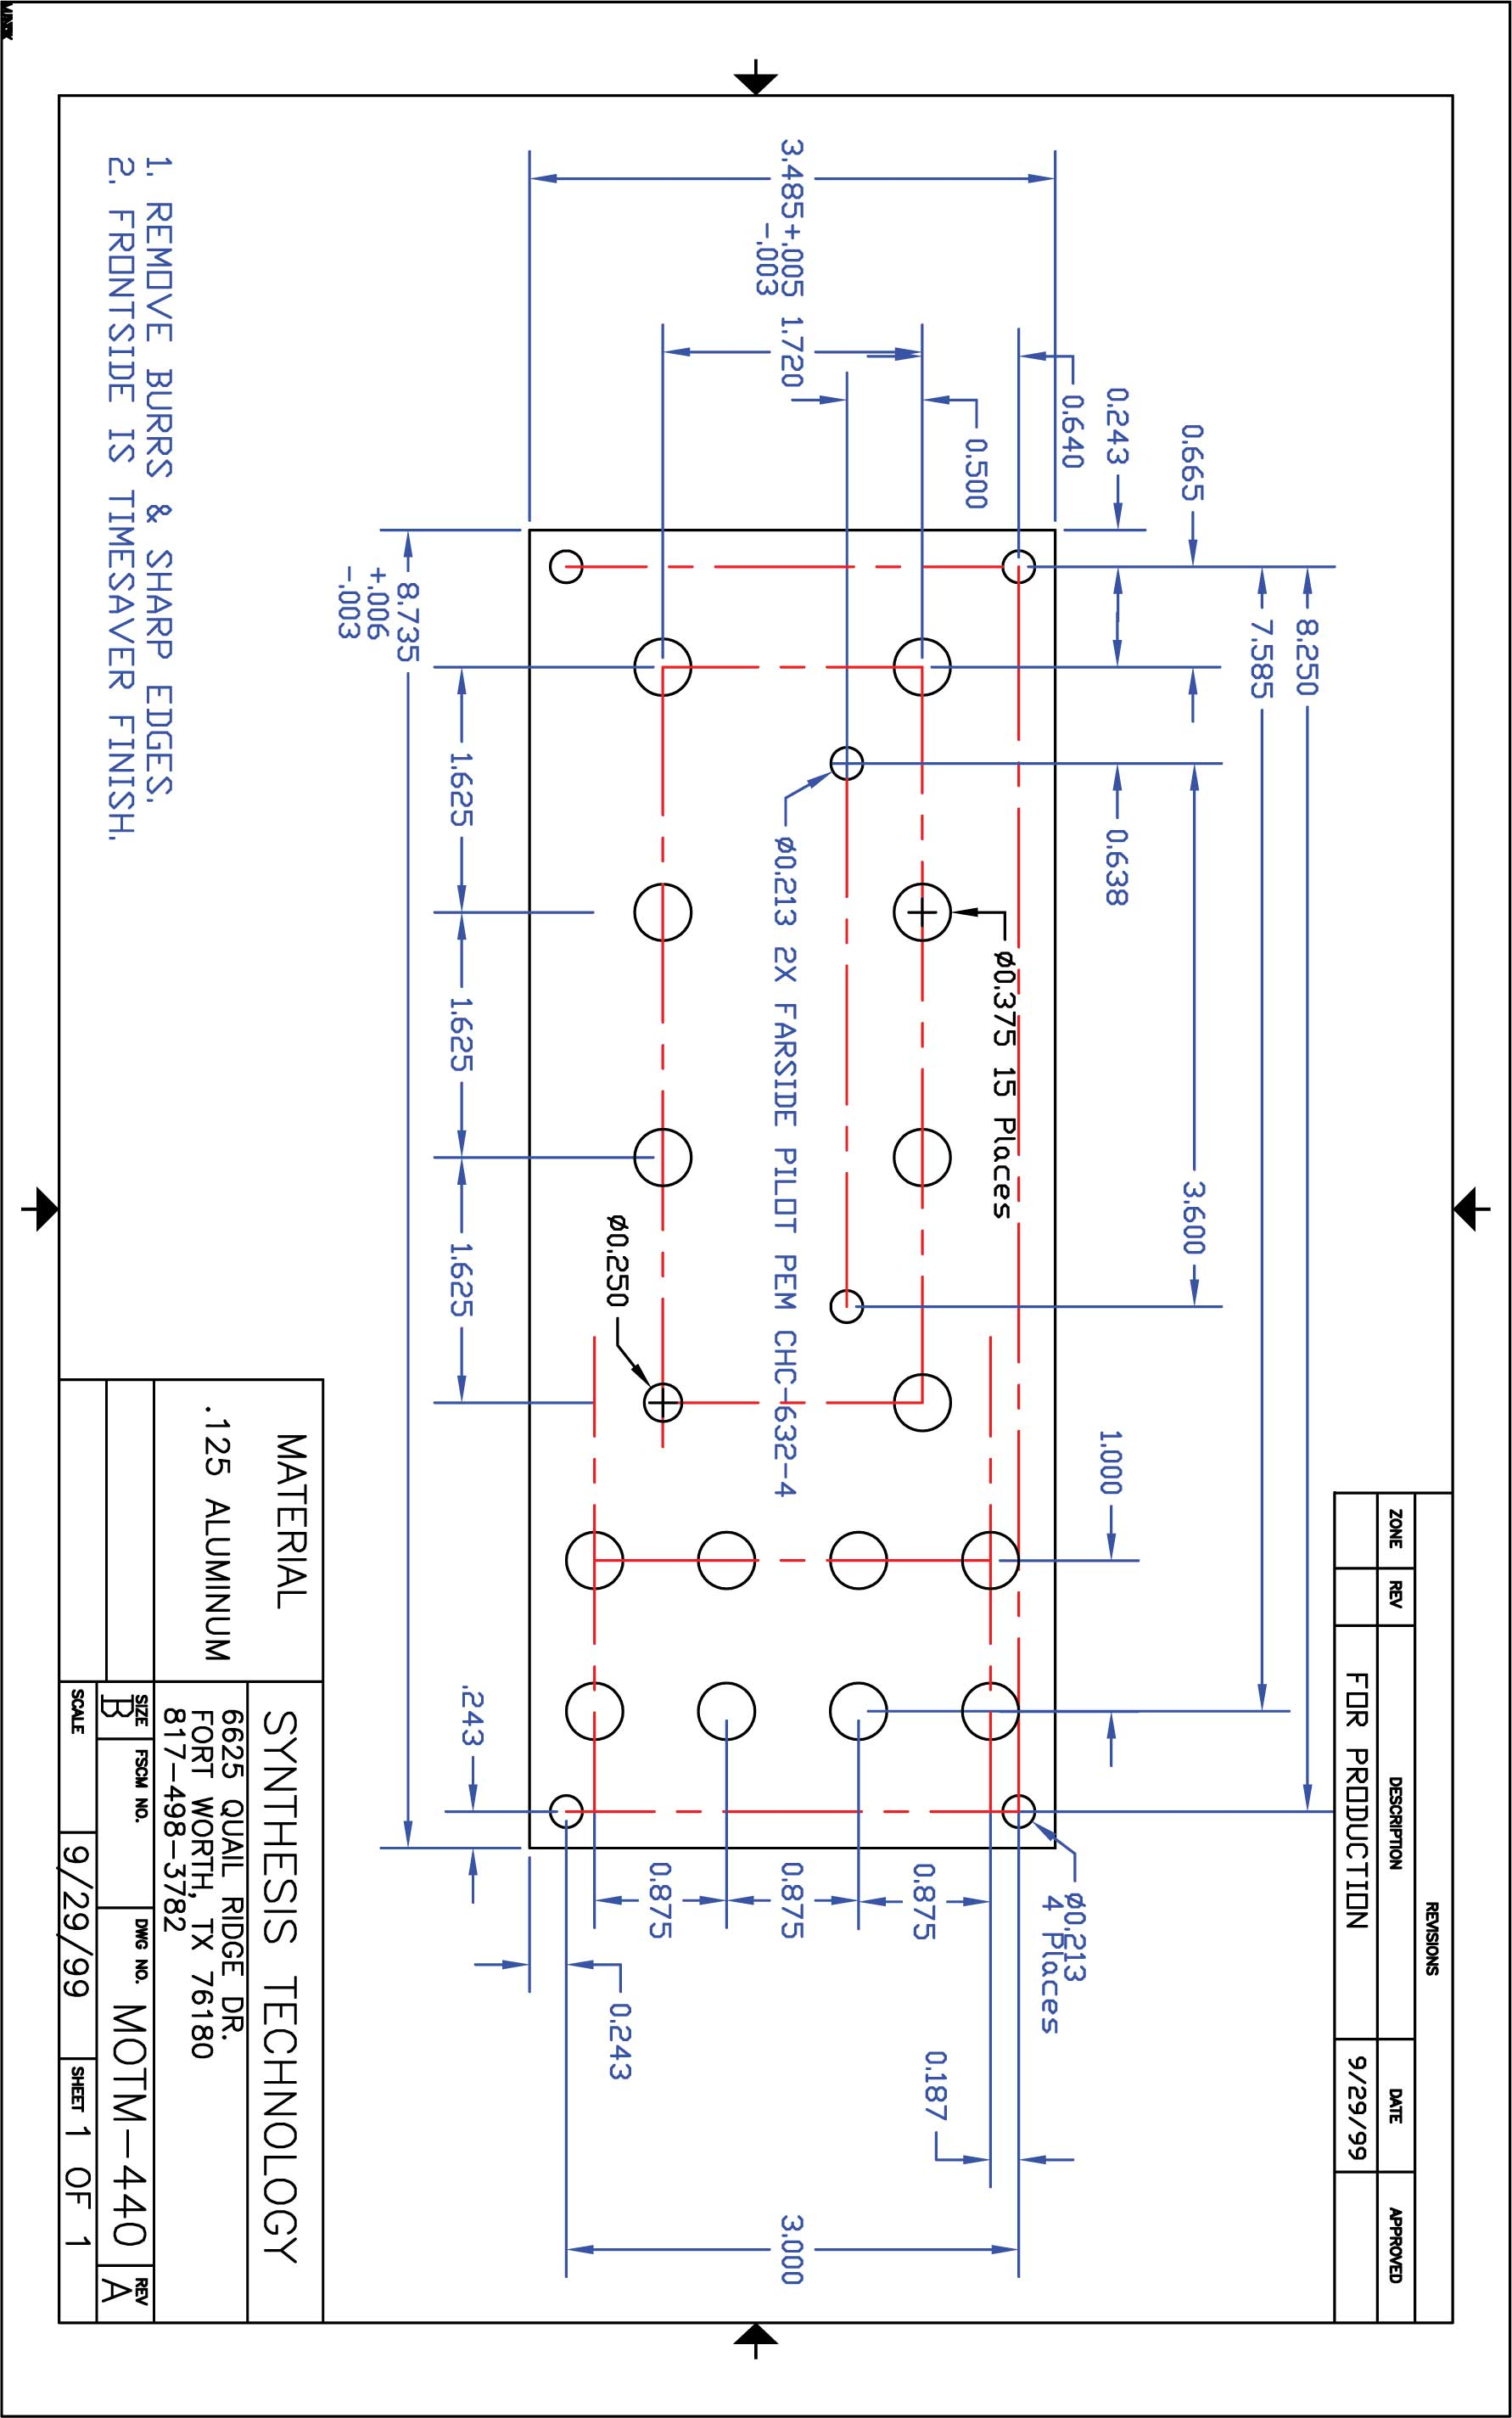 Circuit Diagram 4u Line Follower Robotic With Quad Opamp Bridge Amplifier Tradeoficcom Green Are Pots Blue Is Hole For Mic Connector Red 35mm Jacks And I Will Make 5u Users To Connect Their Big